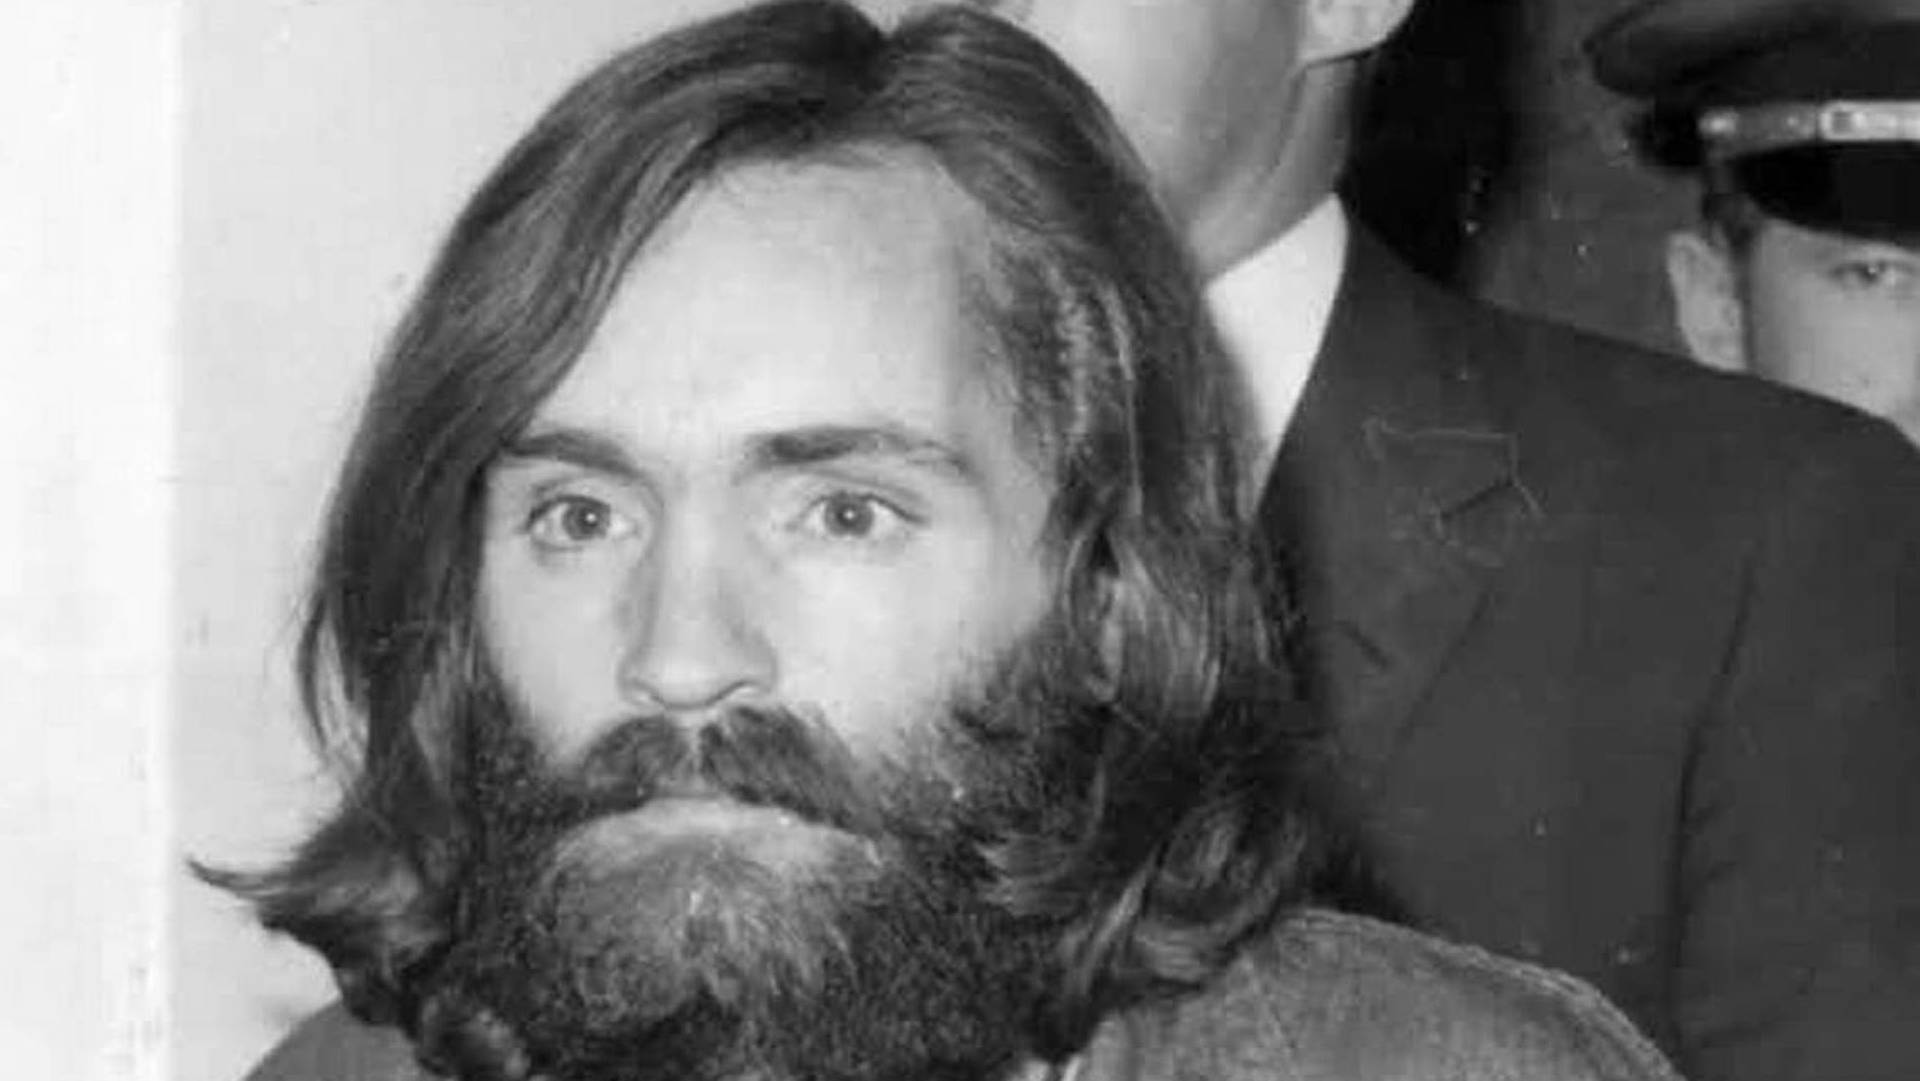 Charles Manson following his arrest.